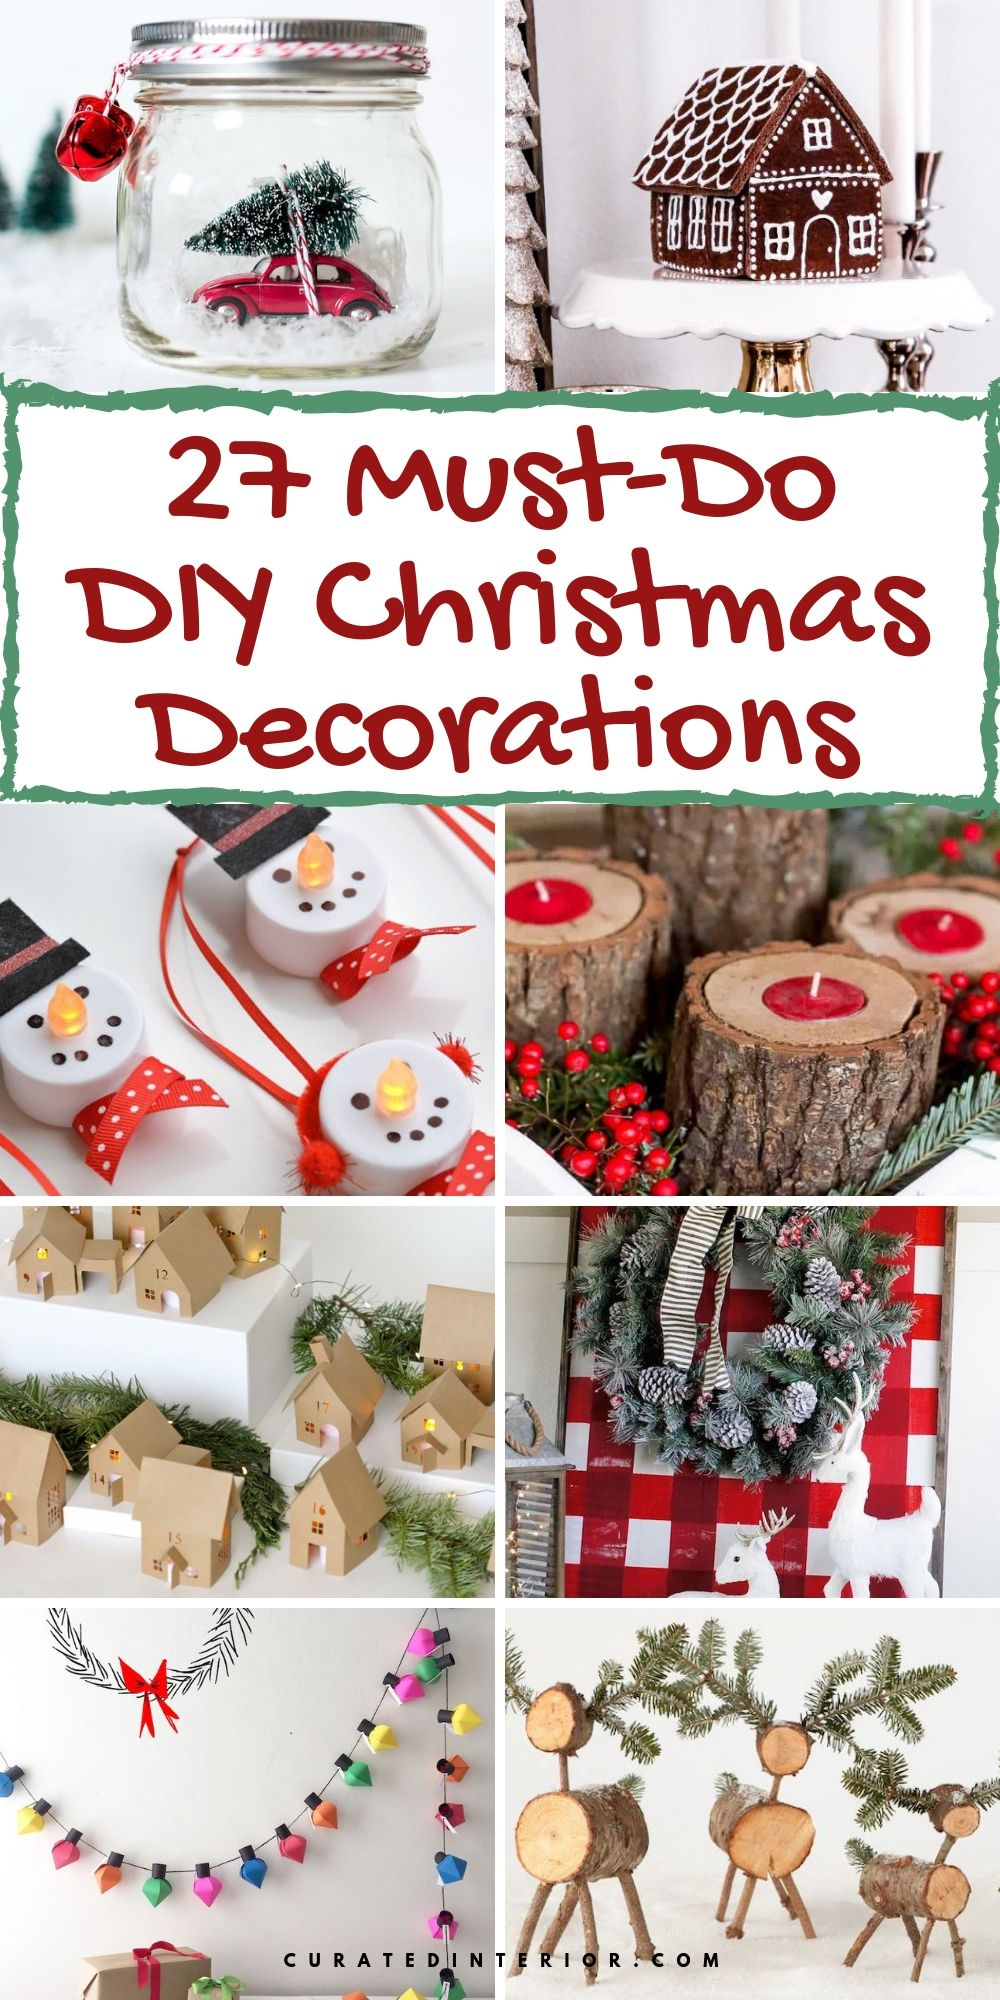 27 Must-Do DIY Christmas Decorations You Need to See! #Christmas #ChristmasDecor #ChristmasDIY #DIYDecor